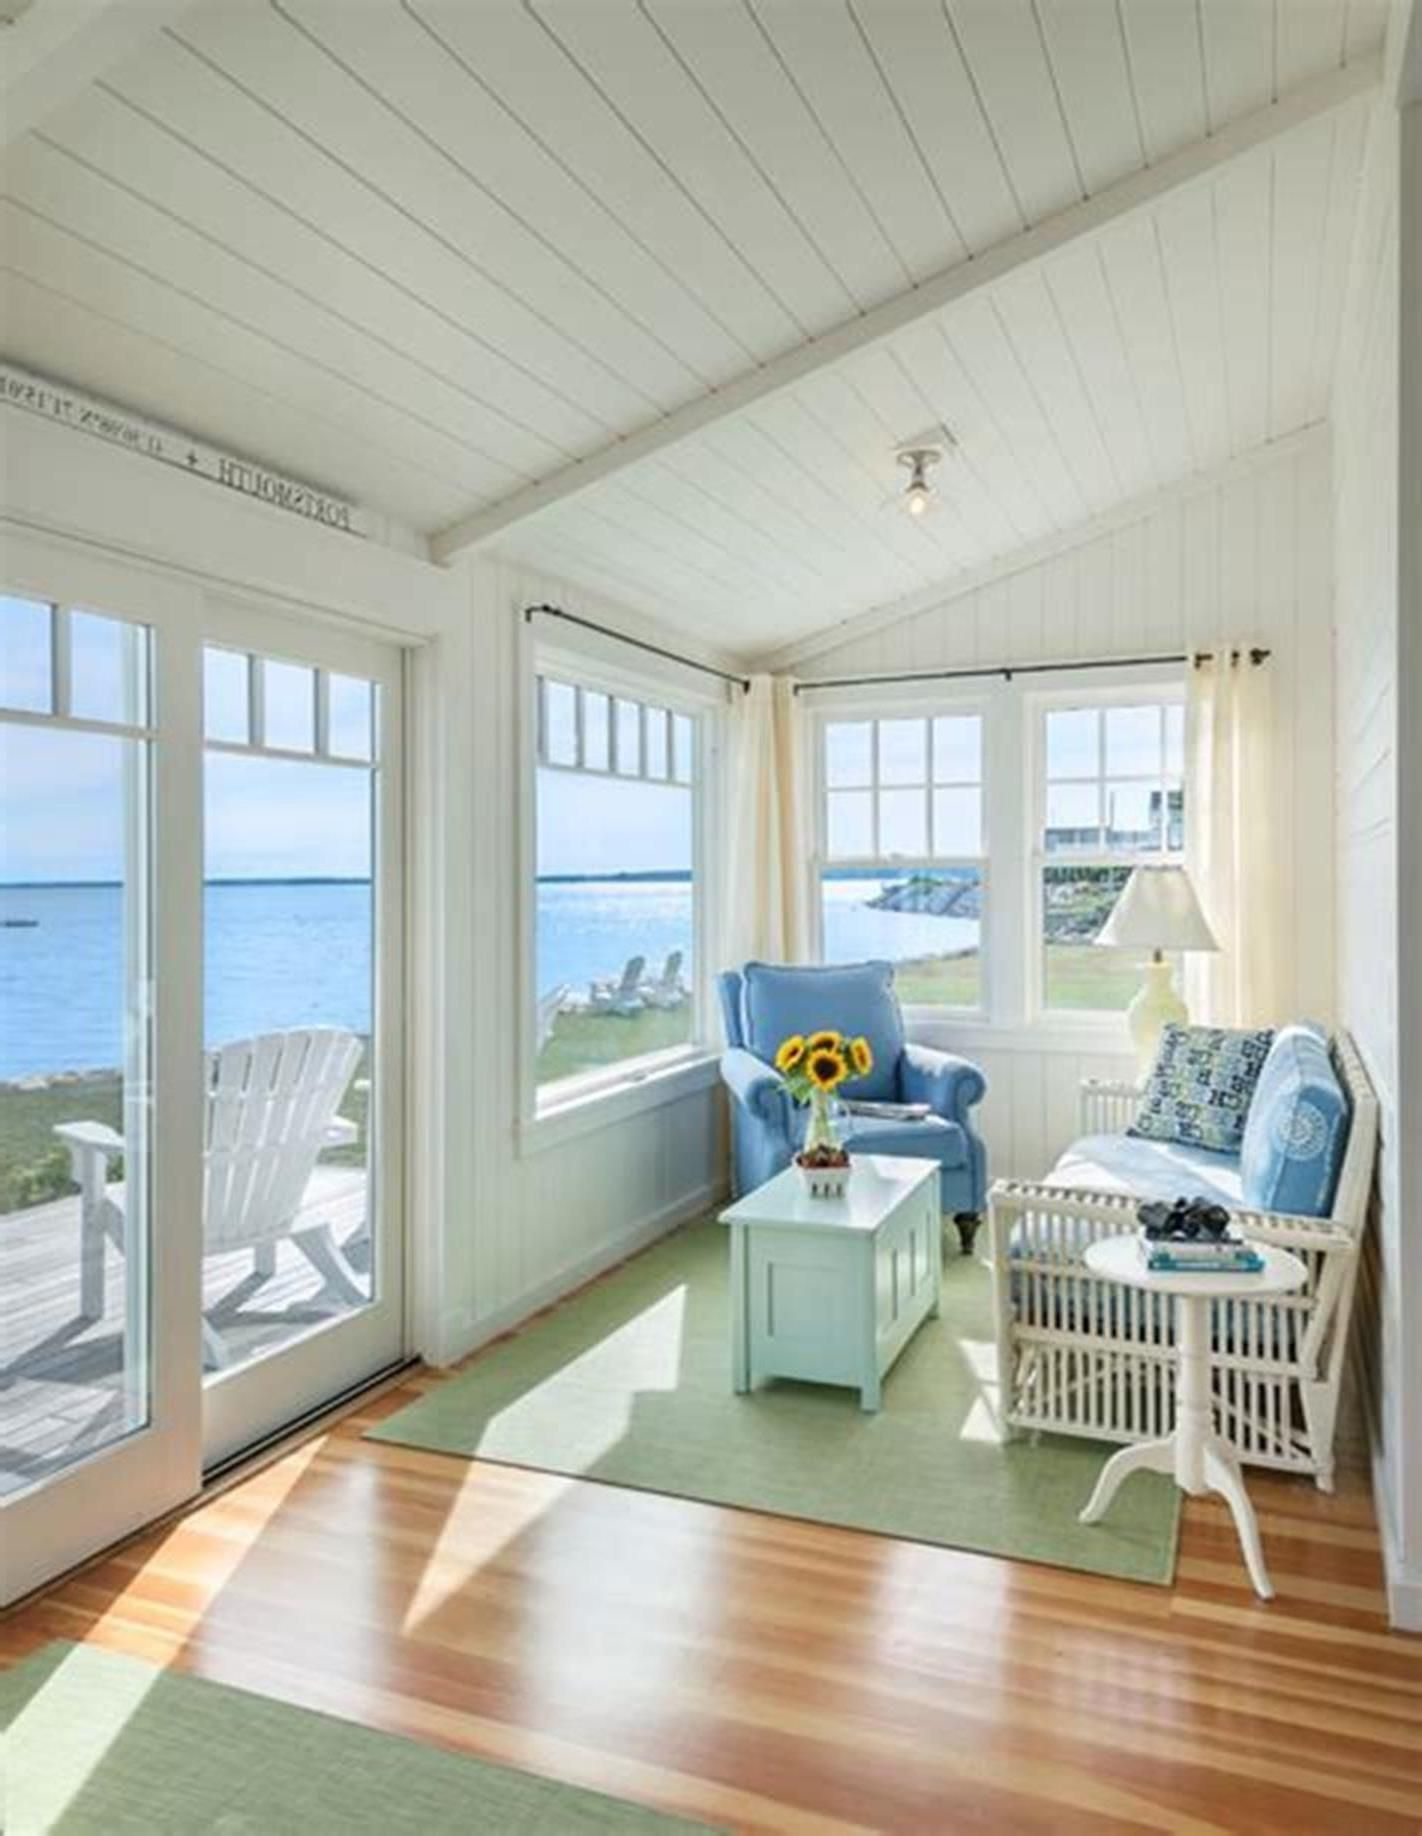 35 Stunning Sunroom Decor And Design Ideas Small Modern Living Room Small Living Room Decor Beach House Interior